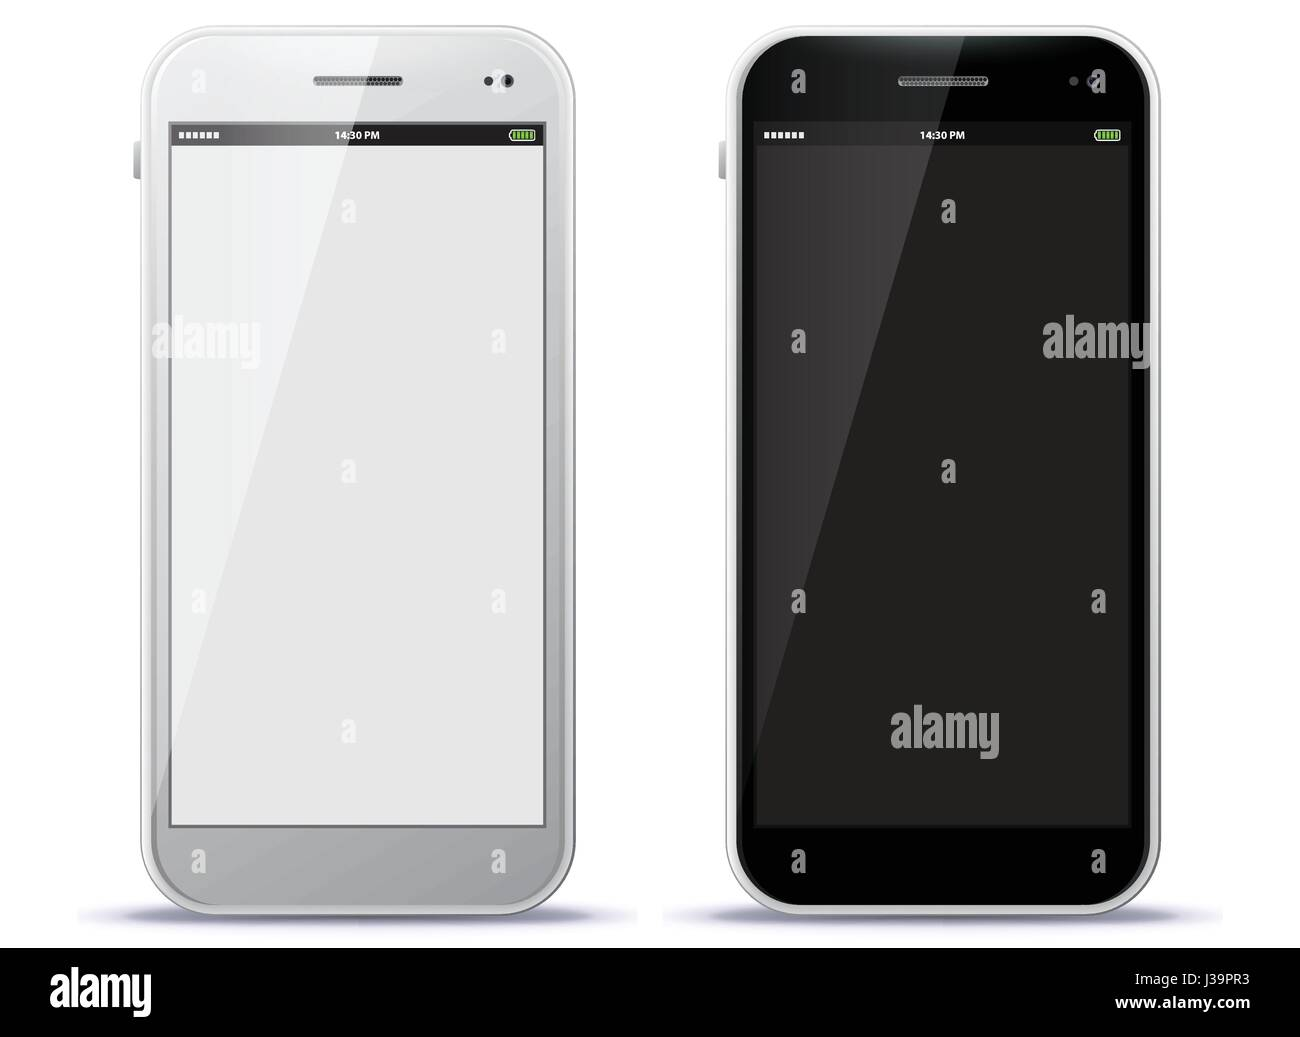 White and Black Mobile Phone Vector Illustration - Stock Image